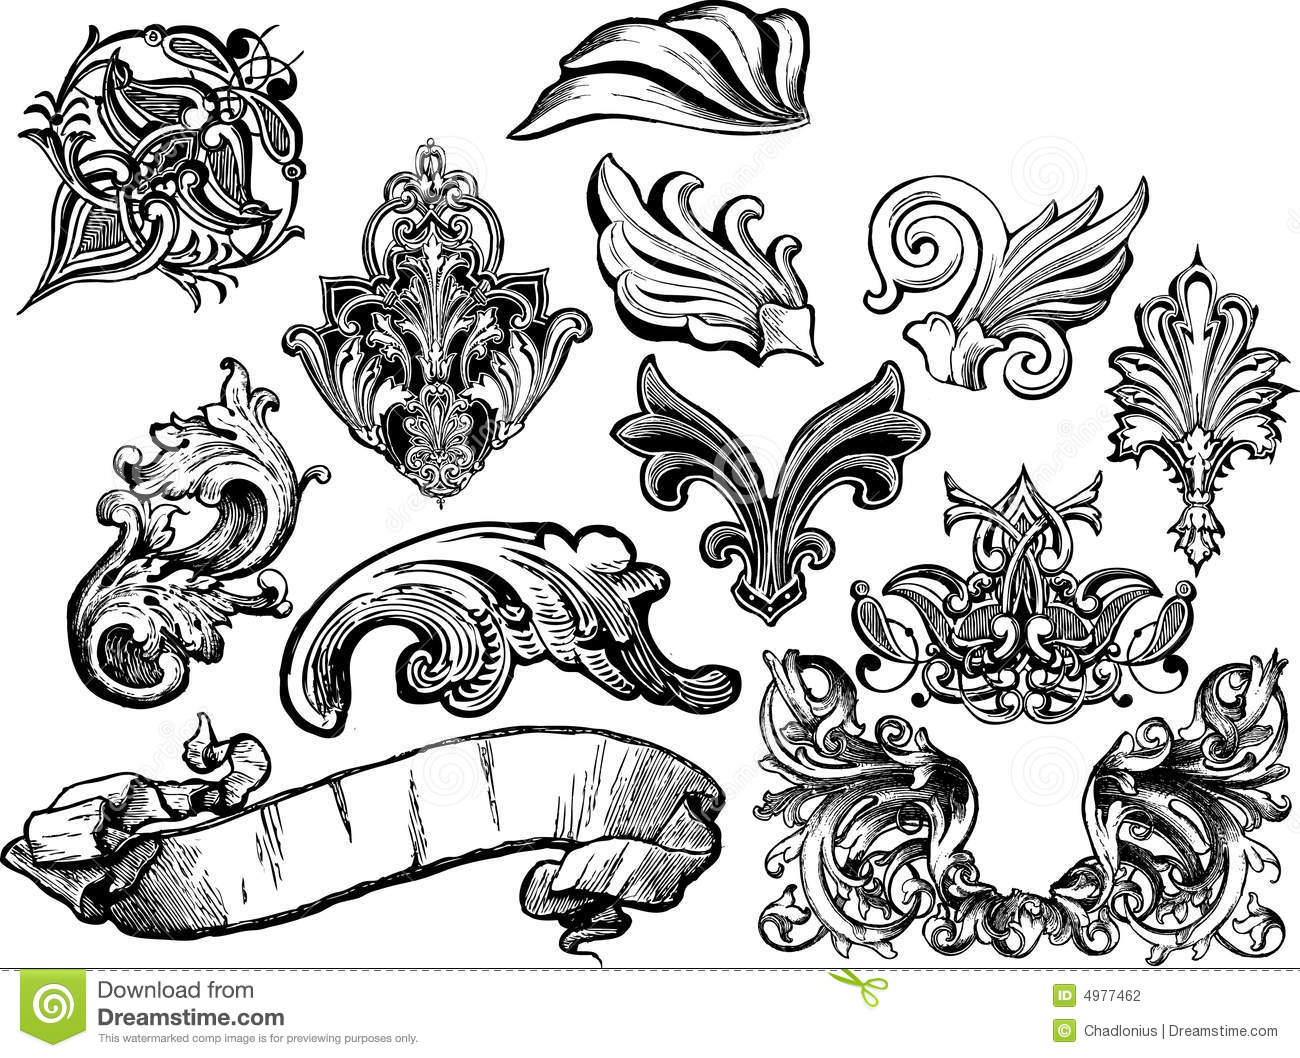 Florals And Scrolls Vector Set 1 Stock Photography - Image: 4977462